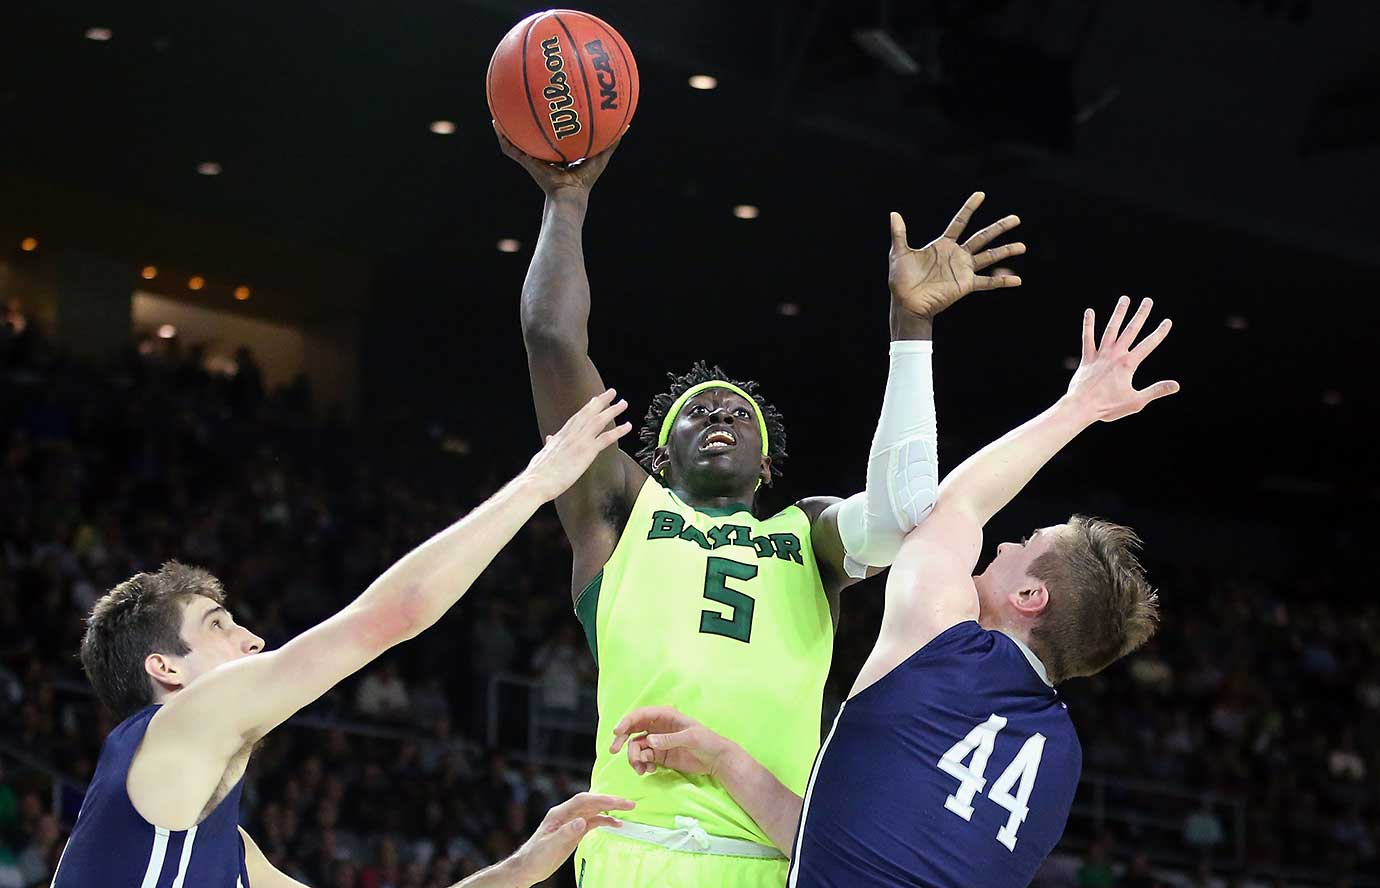 Johnathan Motley of Baylor drives to the basket against Sam Downey (44) of Yale during the Bears's upset loss to the Bulldogs.